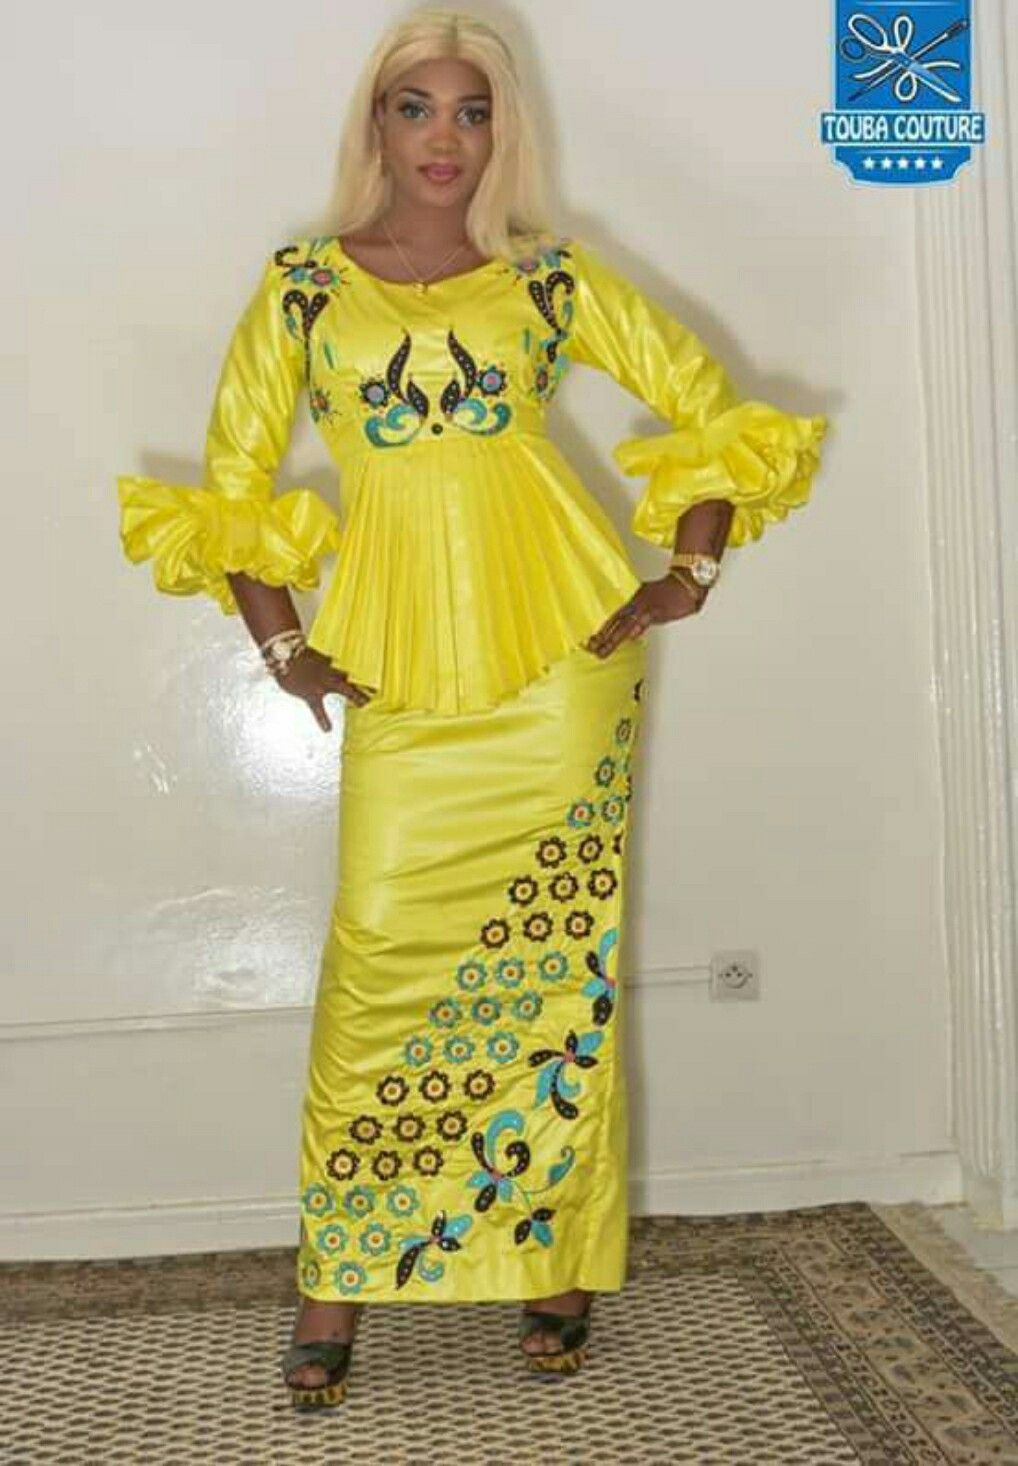 Pin by merry loum on sénégalaise in pinterest how to wear